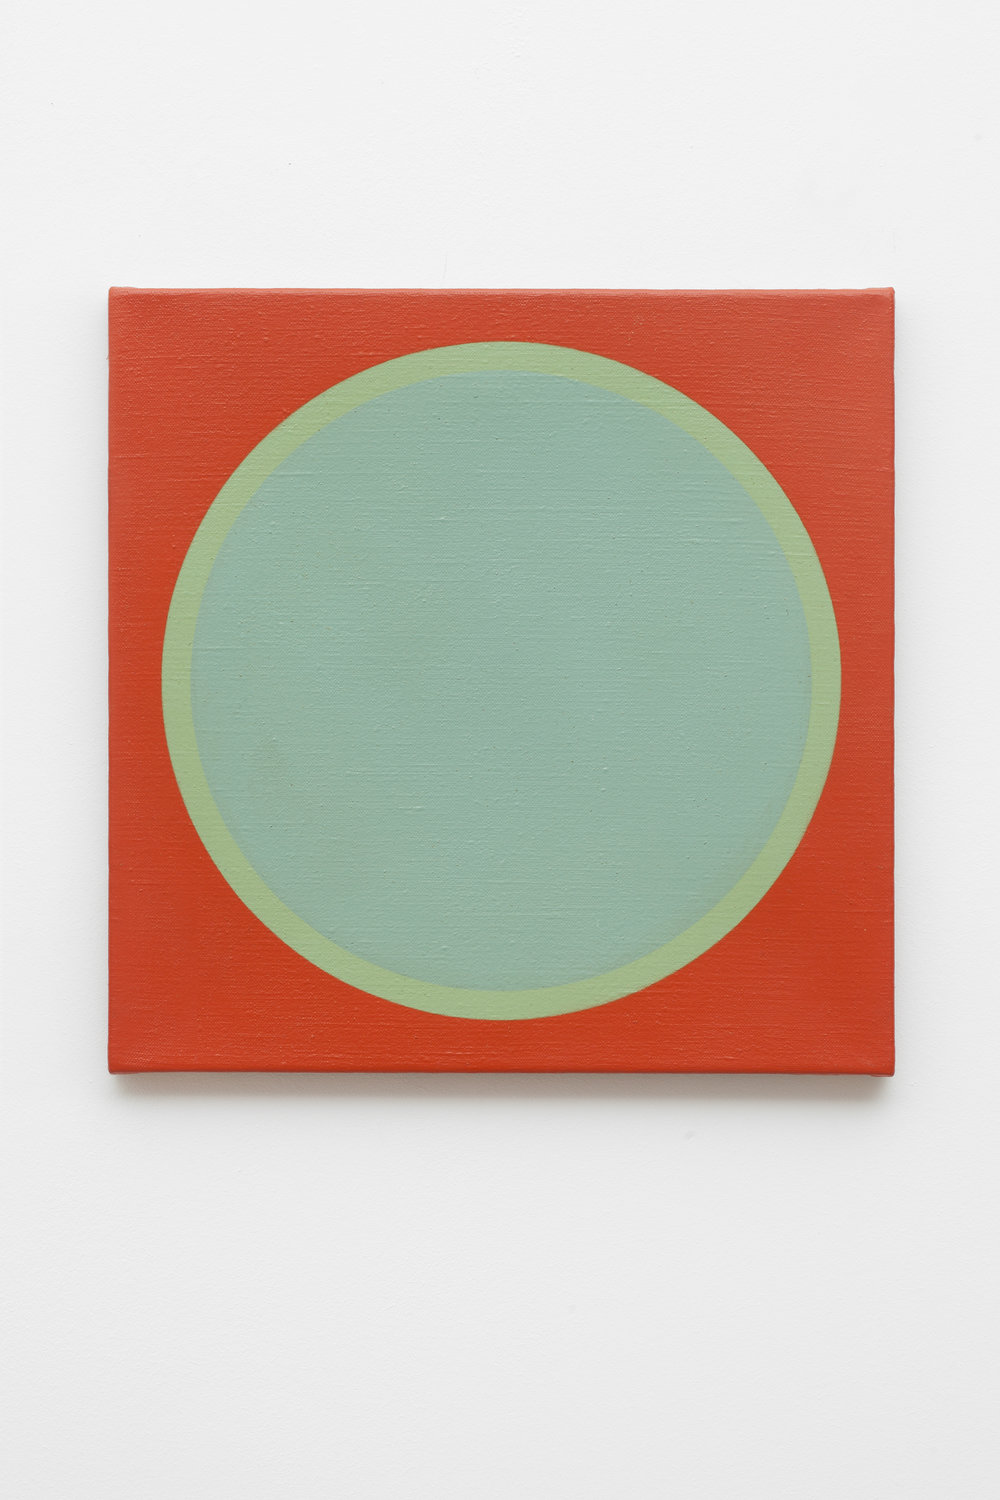 Friedrich Teepe  1969-4 , 1969 acrylic on canvas, 50 x 50 cm